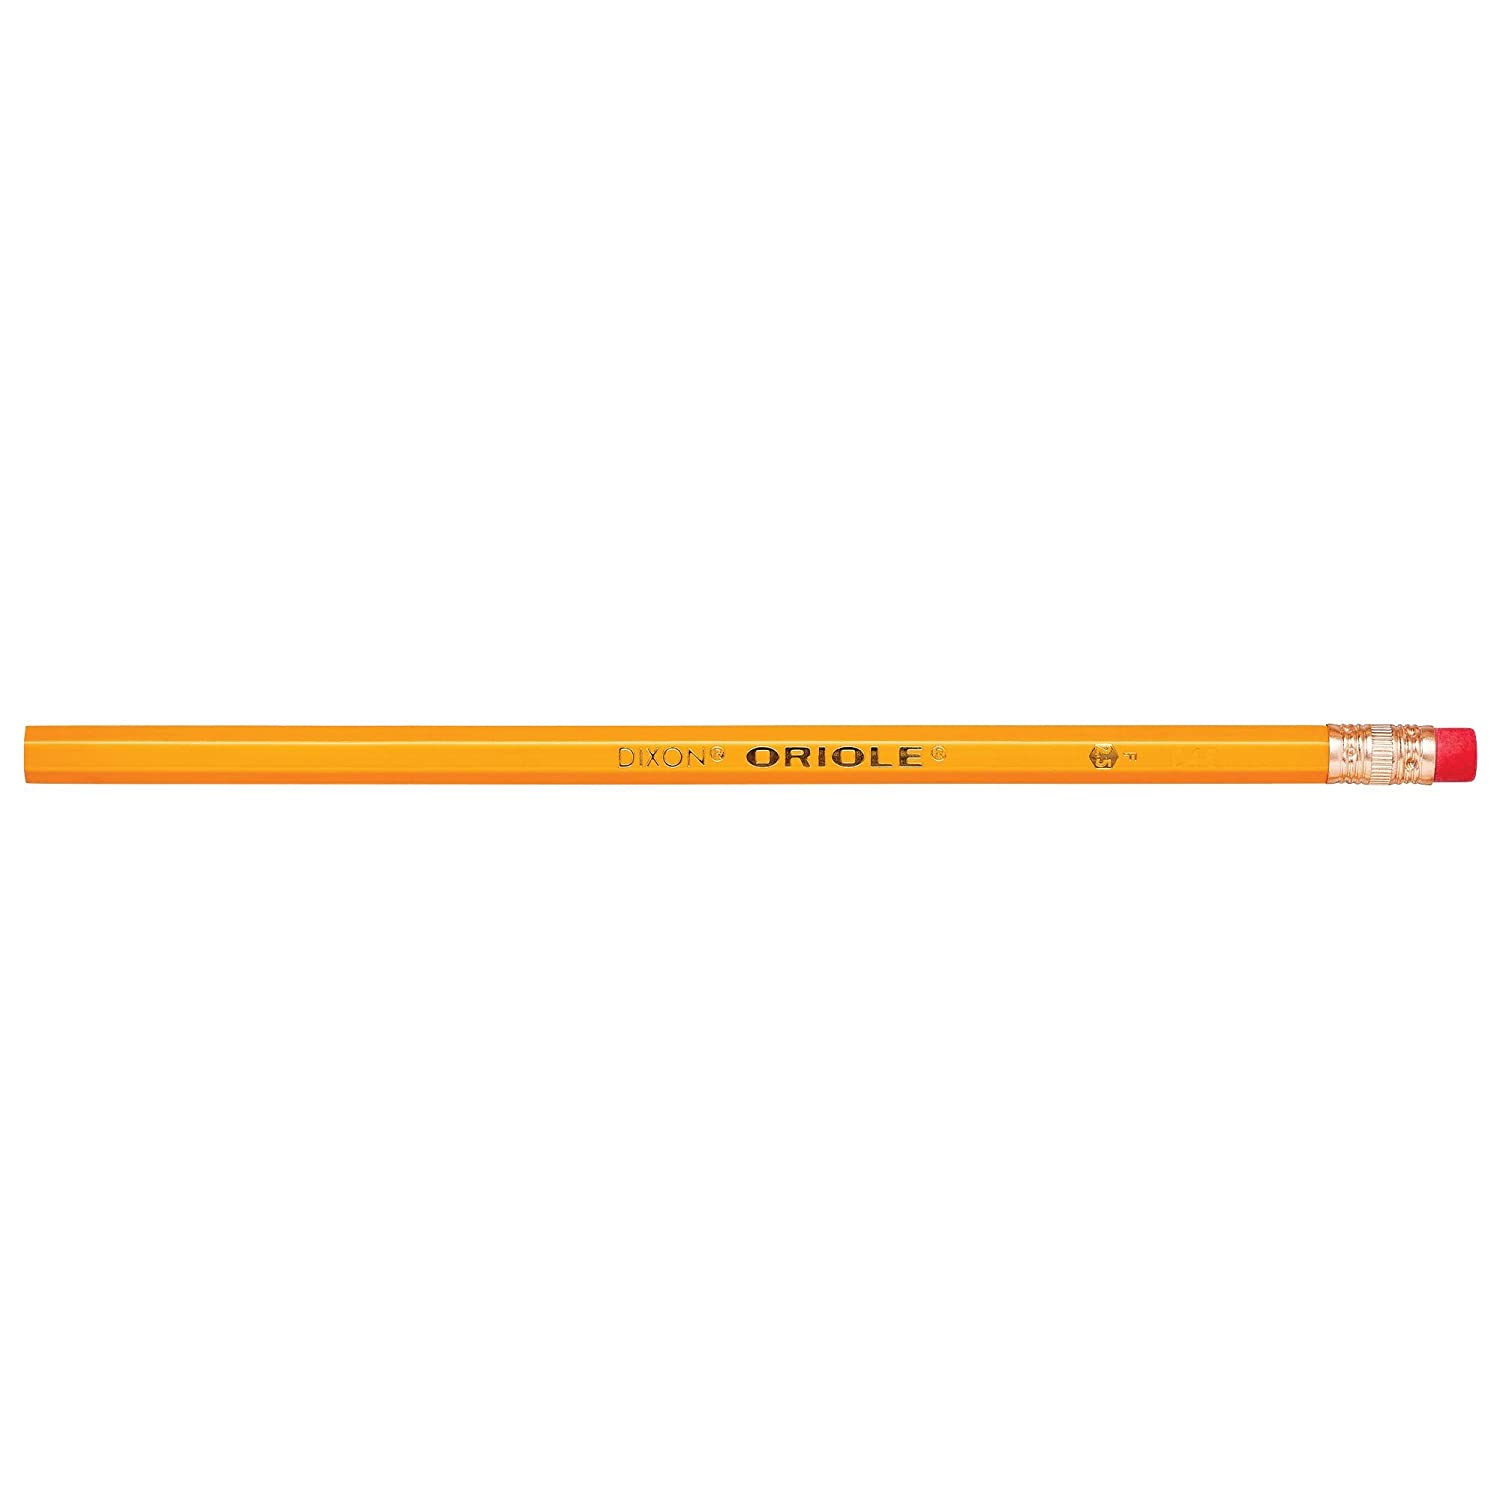 Pre-Sharpened 12886 Yellow 12-Pack #2 HB Graphite DIXON Oriole Wood-Cased Pencils with Erasers